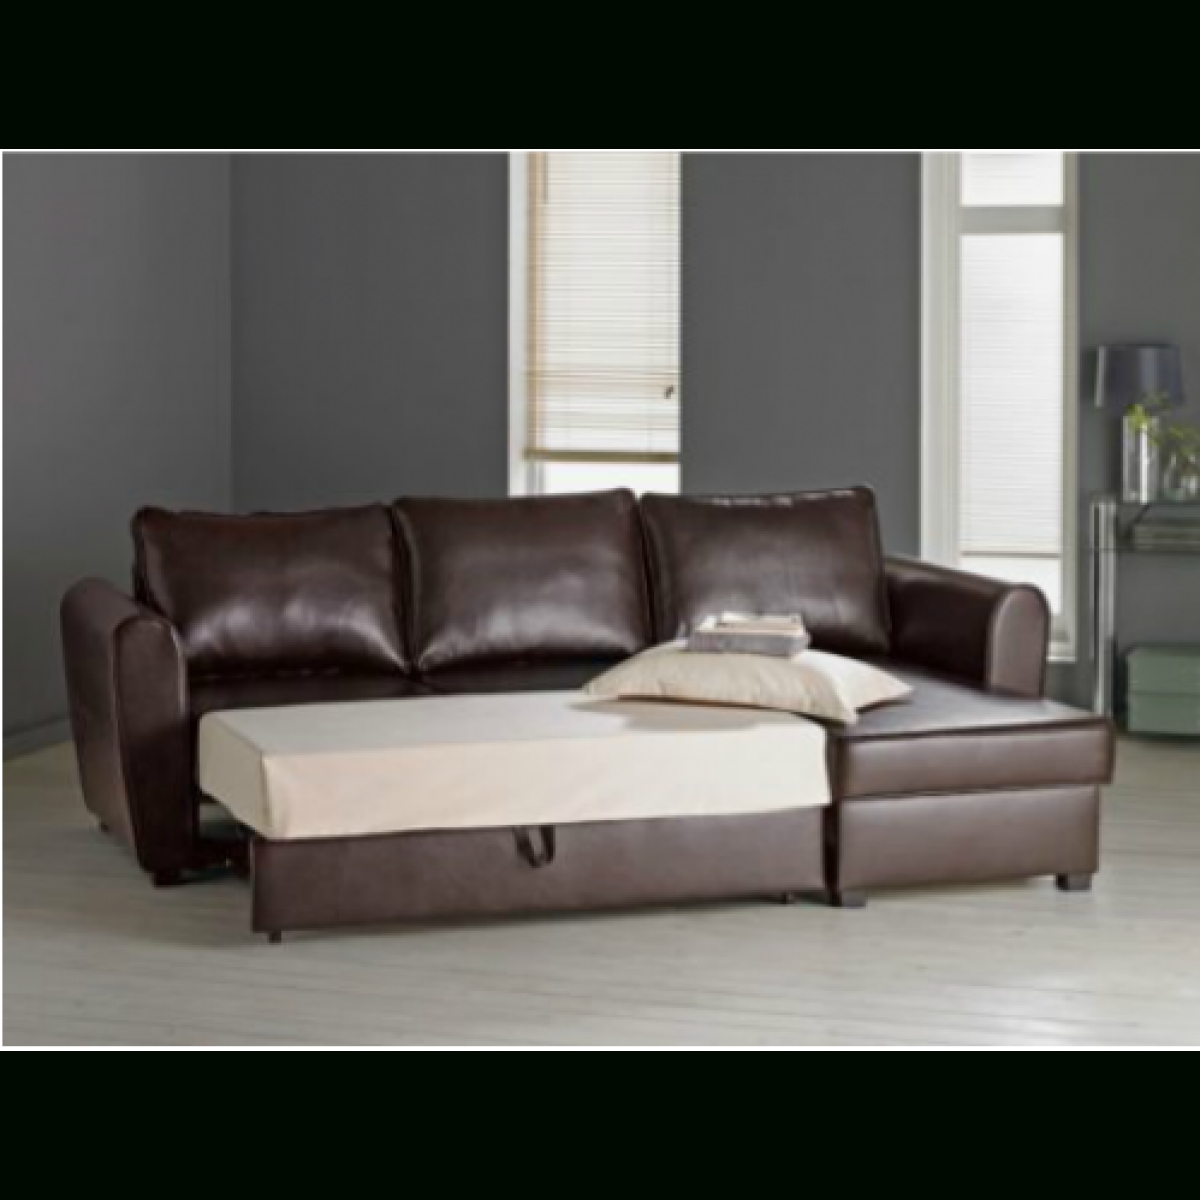 New Siena Fabric Corner Sofa Bed With Storage – Charcoal Inside Leather Corner Sofa Bed (View 12 of 20)